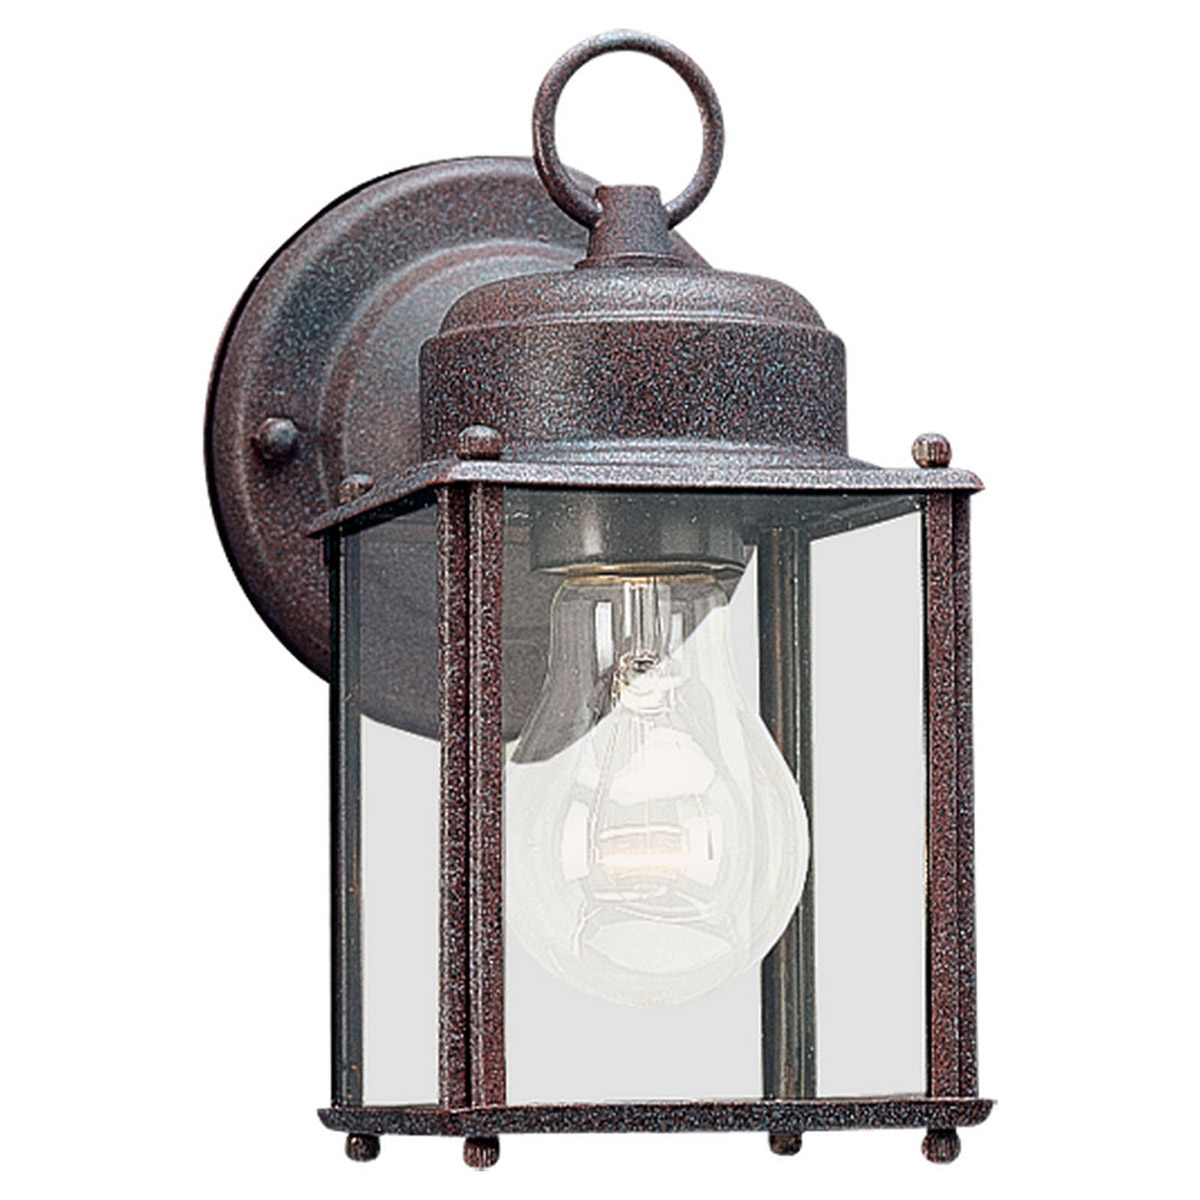 Sea Gull Lighting New Castle 1 Light Outdoor Wall Lantern in Sienna 8592-26